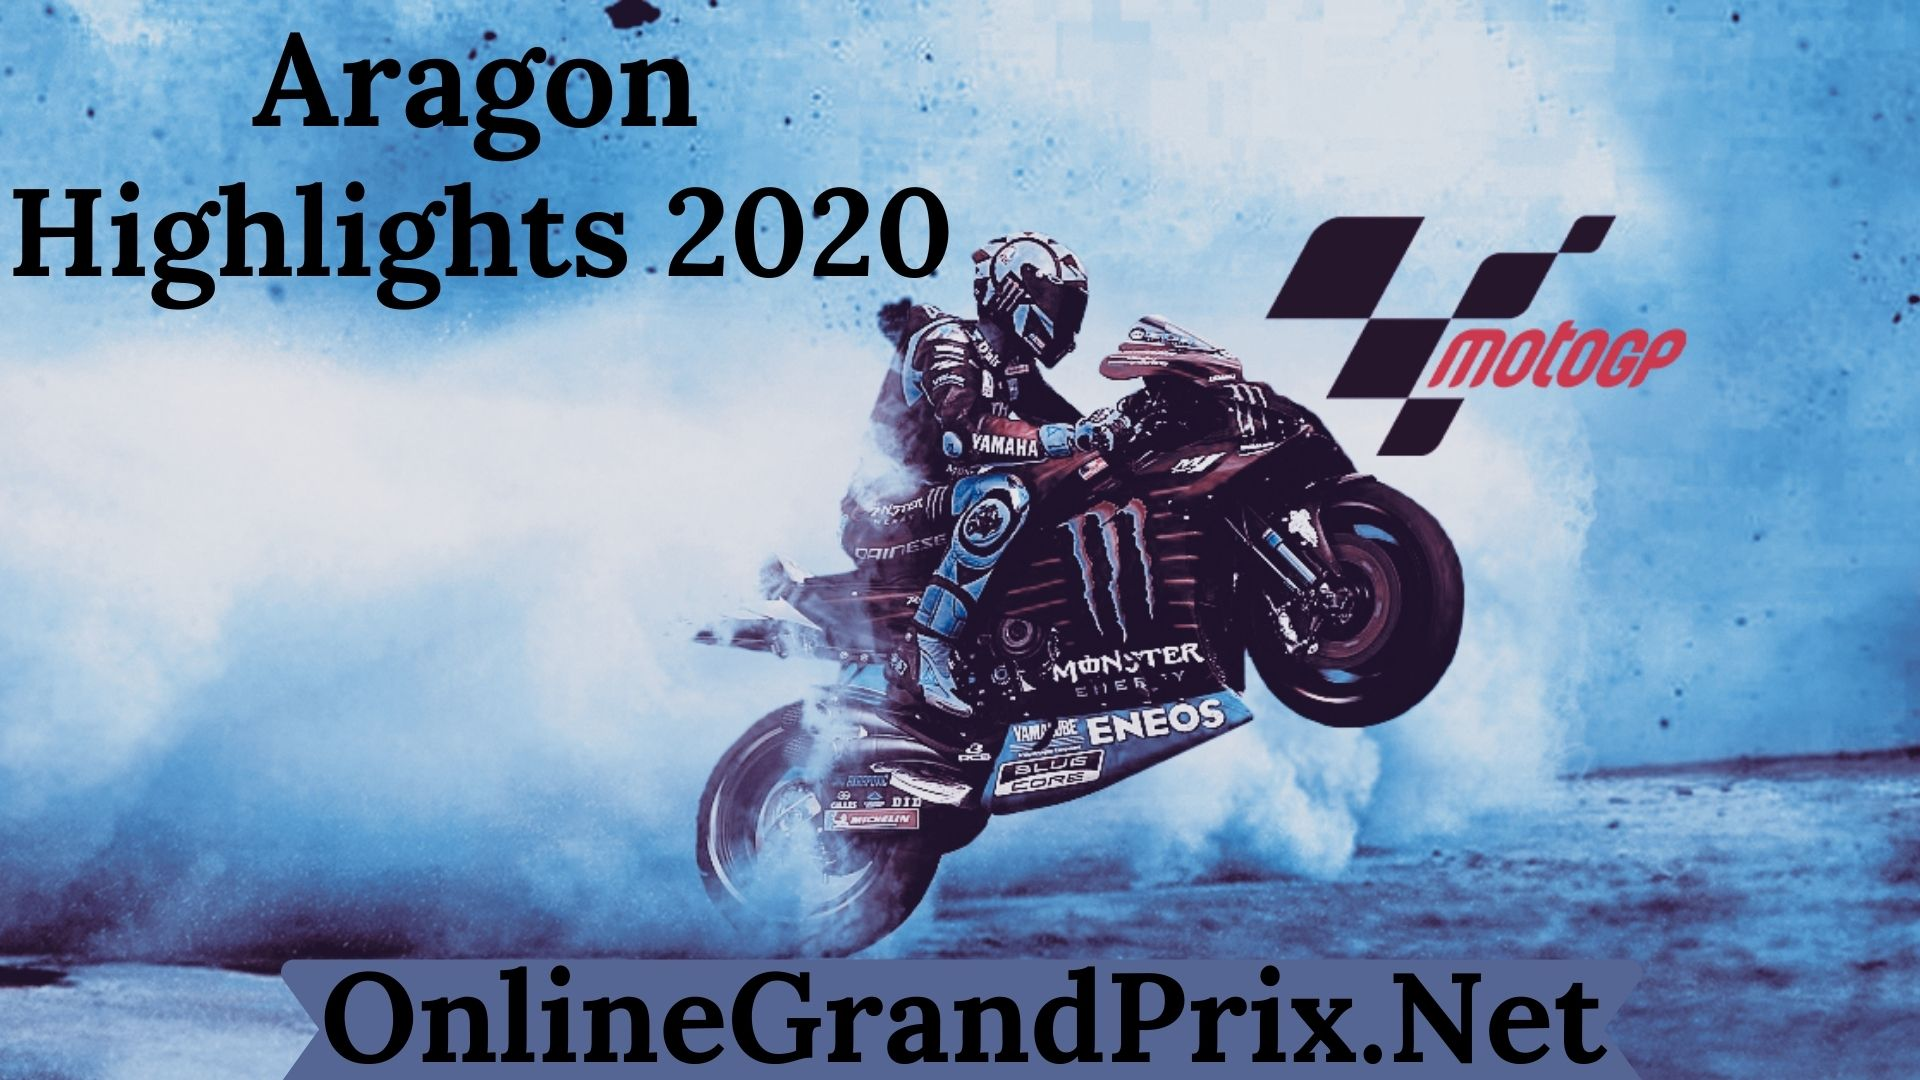 Aragon MotoGP Highlights 2020